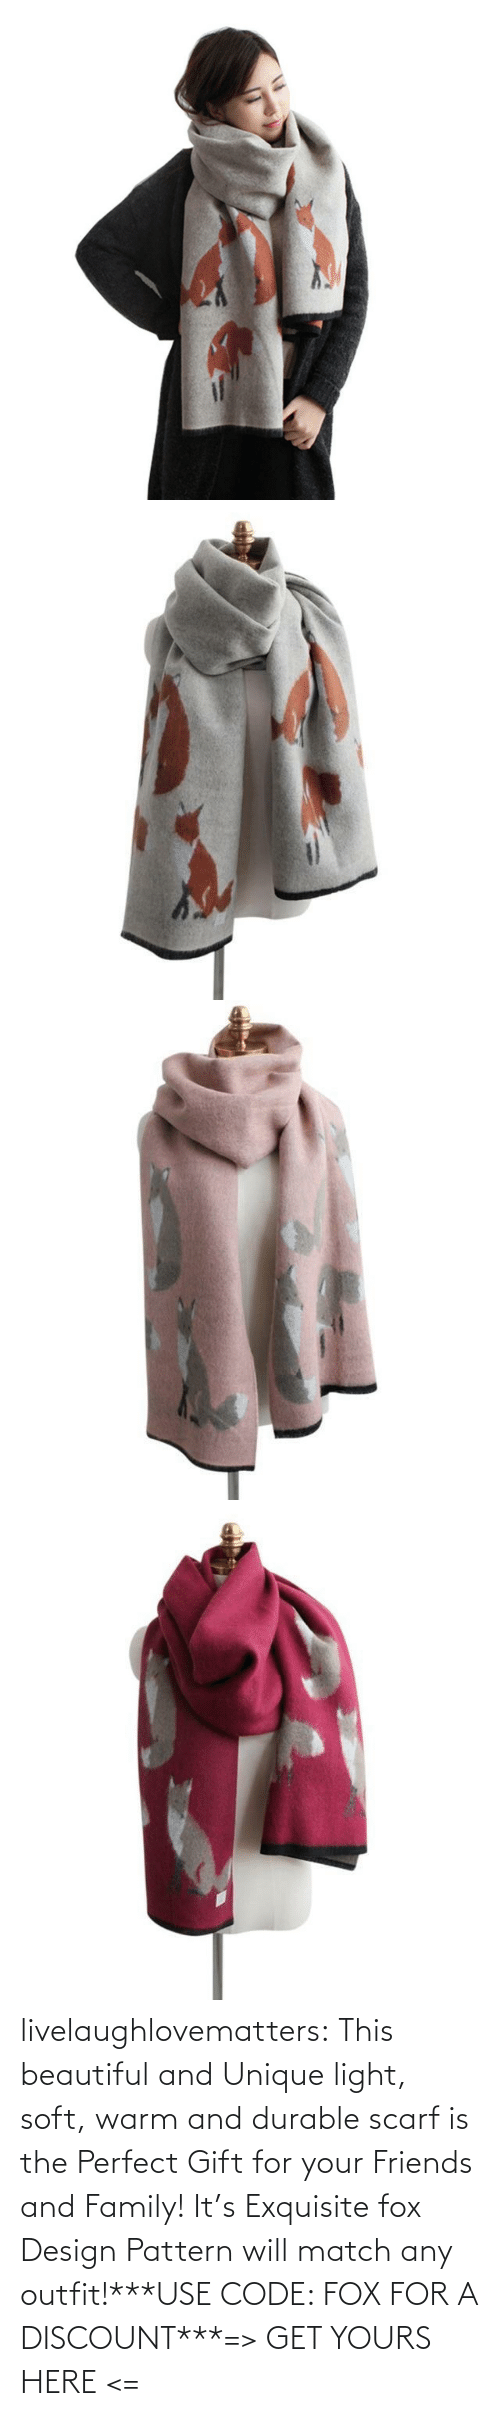 code: livelaughlovematters:  This beautiful and Unique light, soft, warm and durable scarf is the Perfect Gift for your Friends and Family! It's Exquisite fox Design Pattern will match any outfit!***USE CODE: FOX FOR A DISCOUNT***=> GET YOURS HERE <=